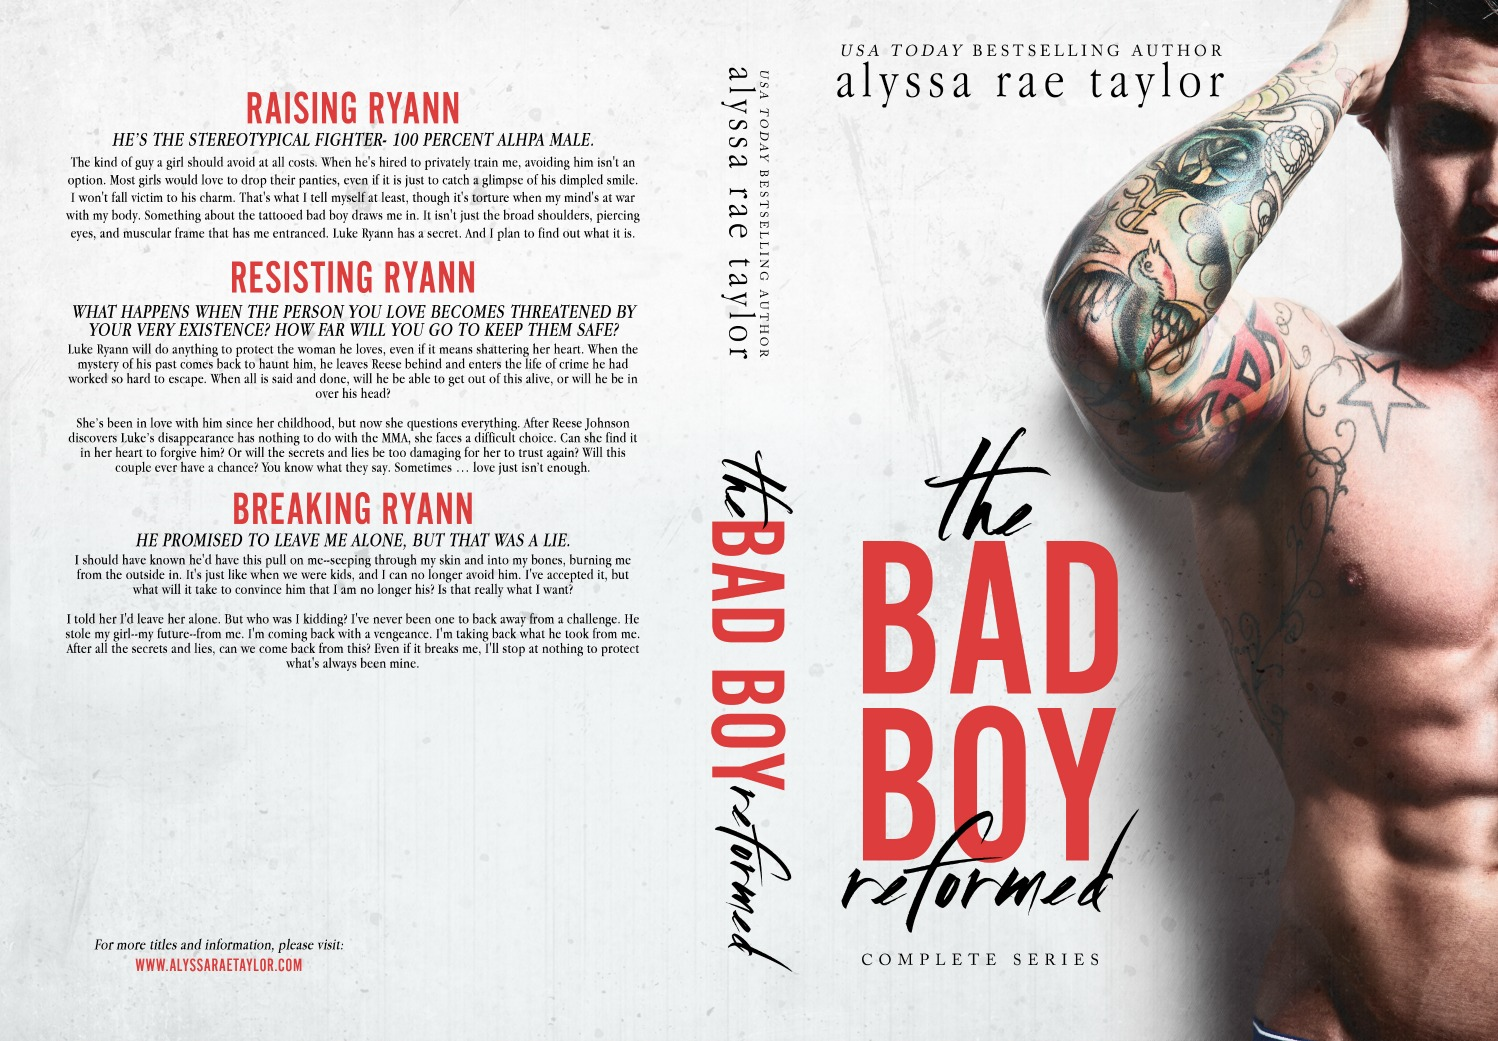 dating a reformed bad boy Sure bad boys can change but the reality is some bad boys were just mixed up and others leave behind things that last forever my boyfriend wasn't a.